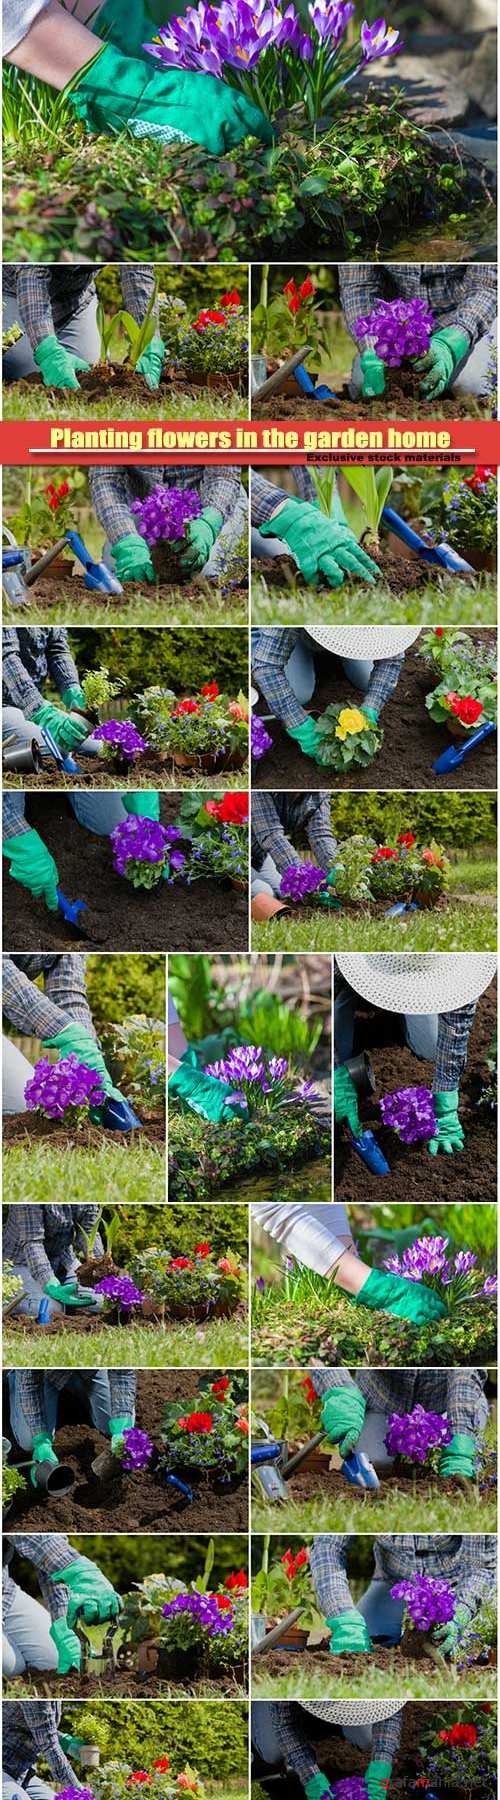 Planting flowers in the garden home